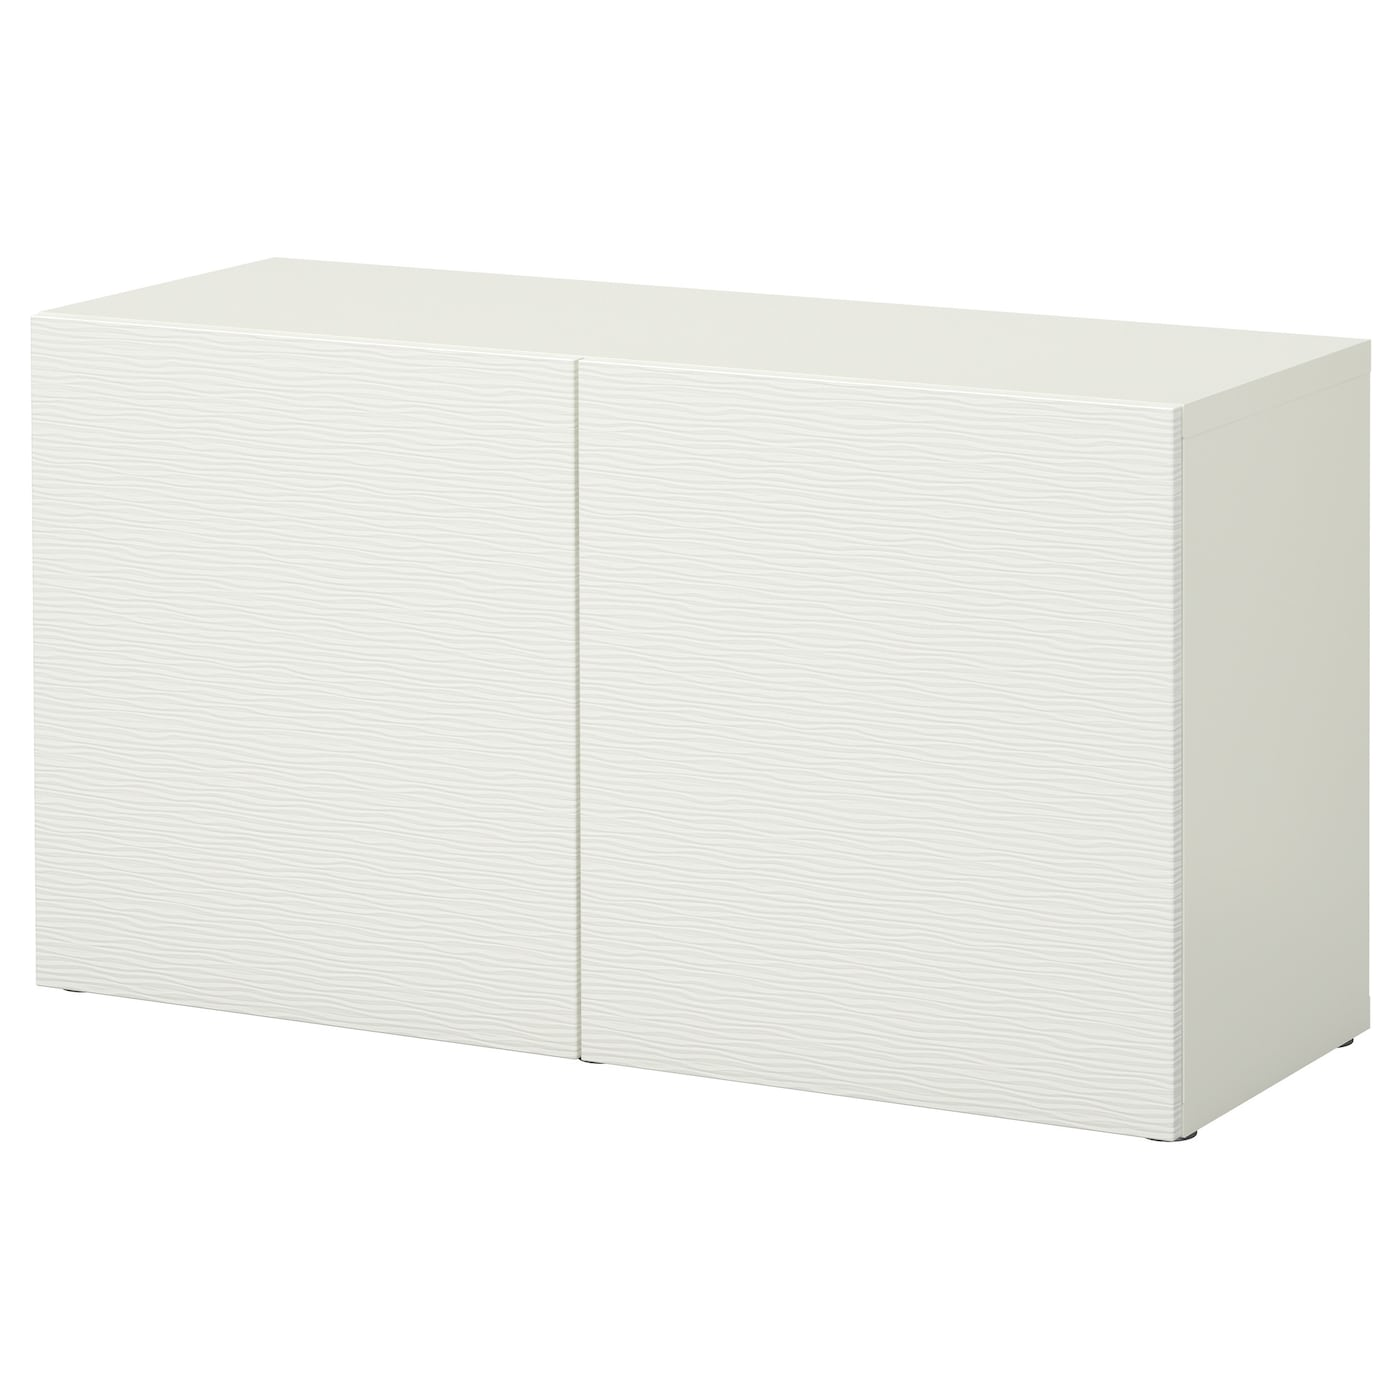 best shelf unit with doors laxviken white 120x40x64 cm ikea. Black Bedroom Furniture Sets. Home Design Ideas